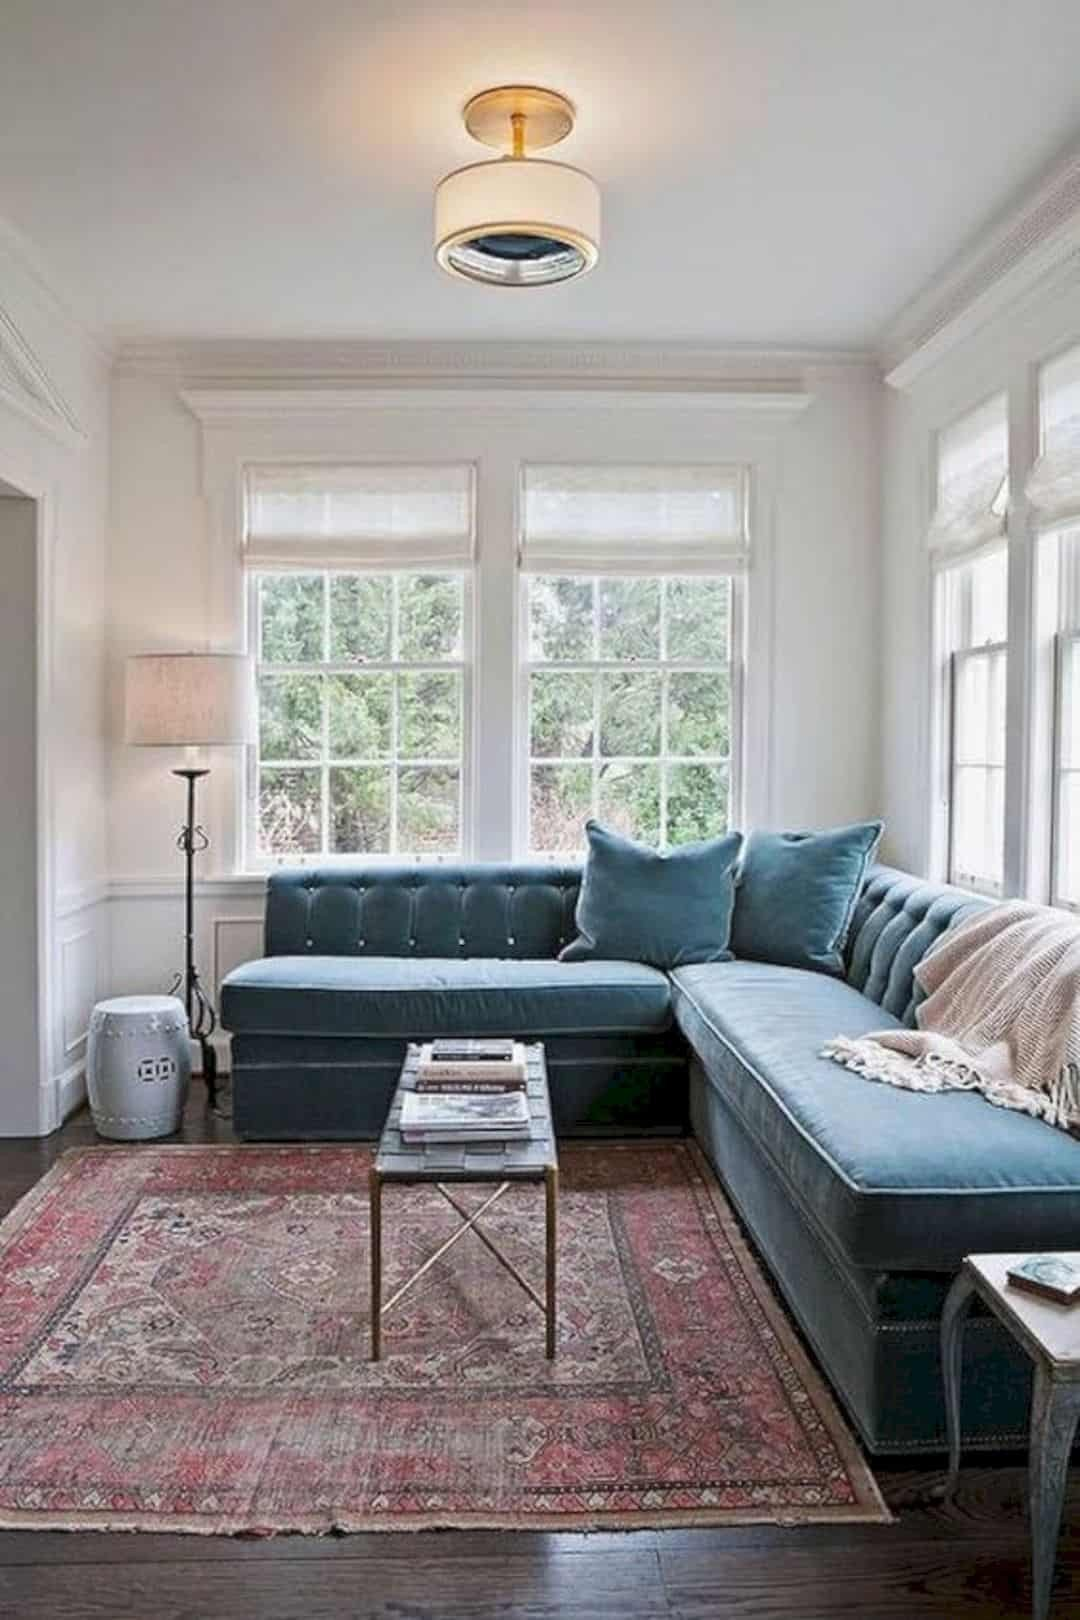 Simple Living Room Decorating Ideas Awesome 16 Simple Interior Design Ideas for Living Room